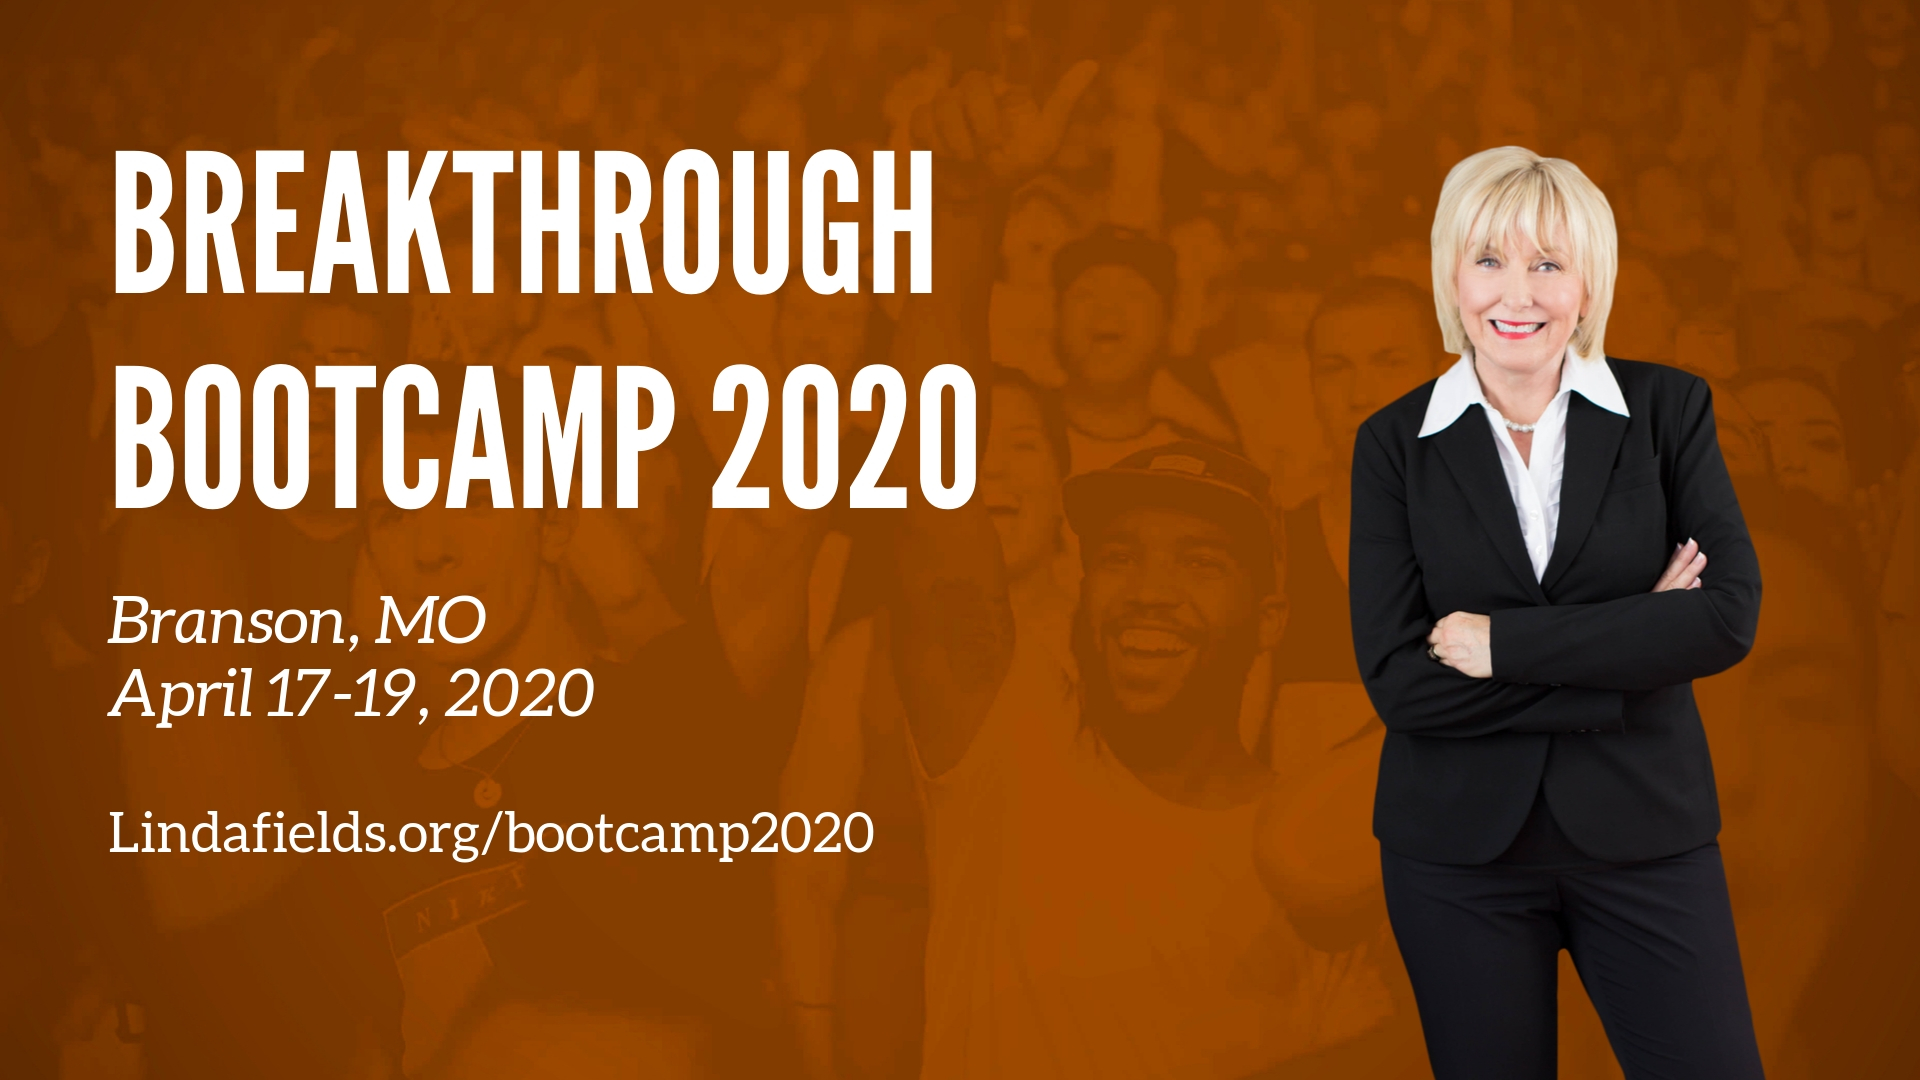 Breakthrough Bootcamp 2020